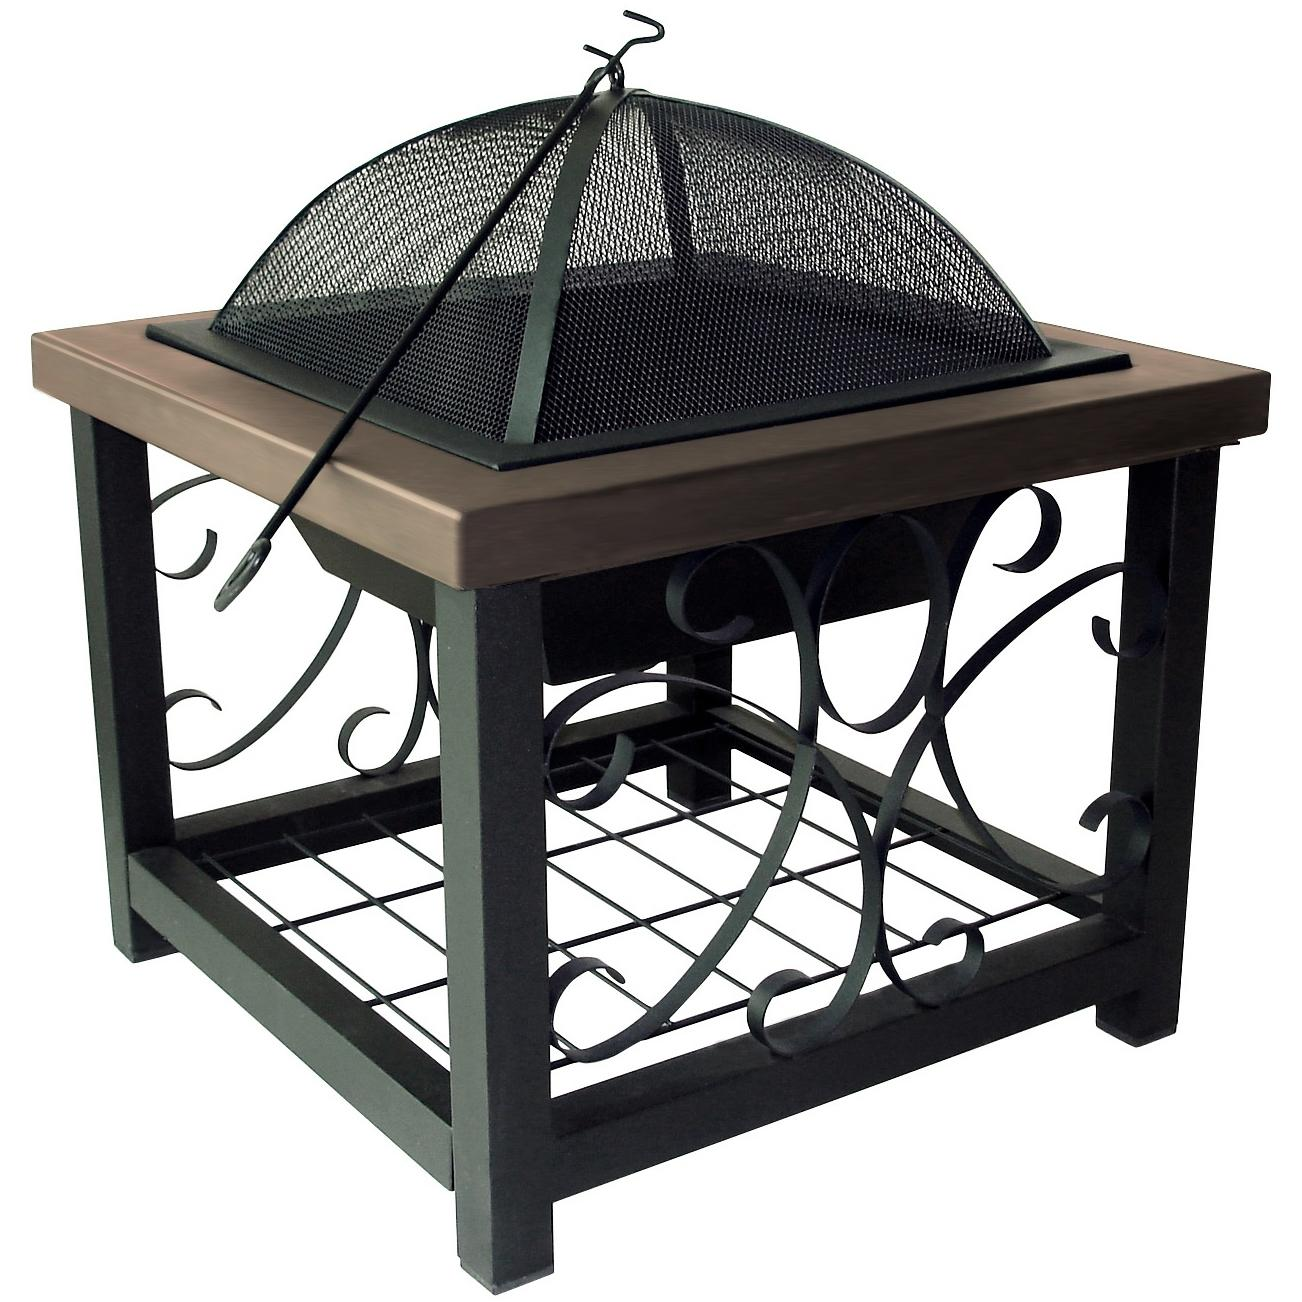 Fire Sense 28-Inch Square Fire Pit Table - Old World Bronze